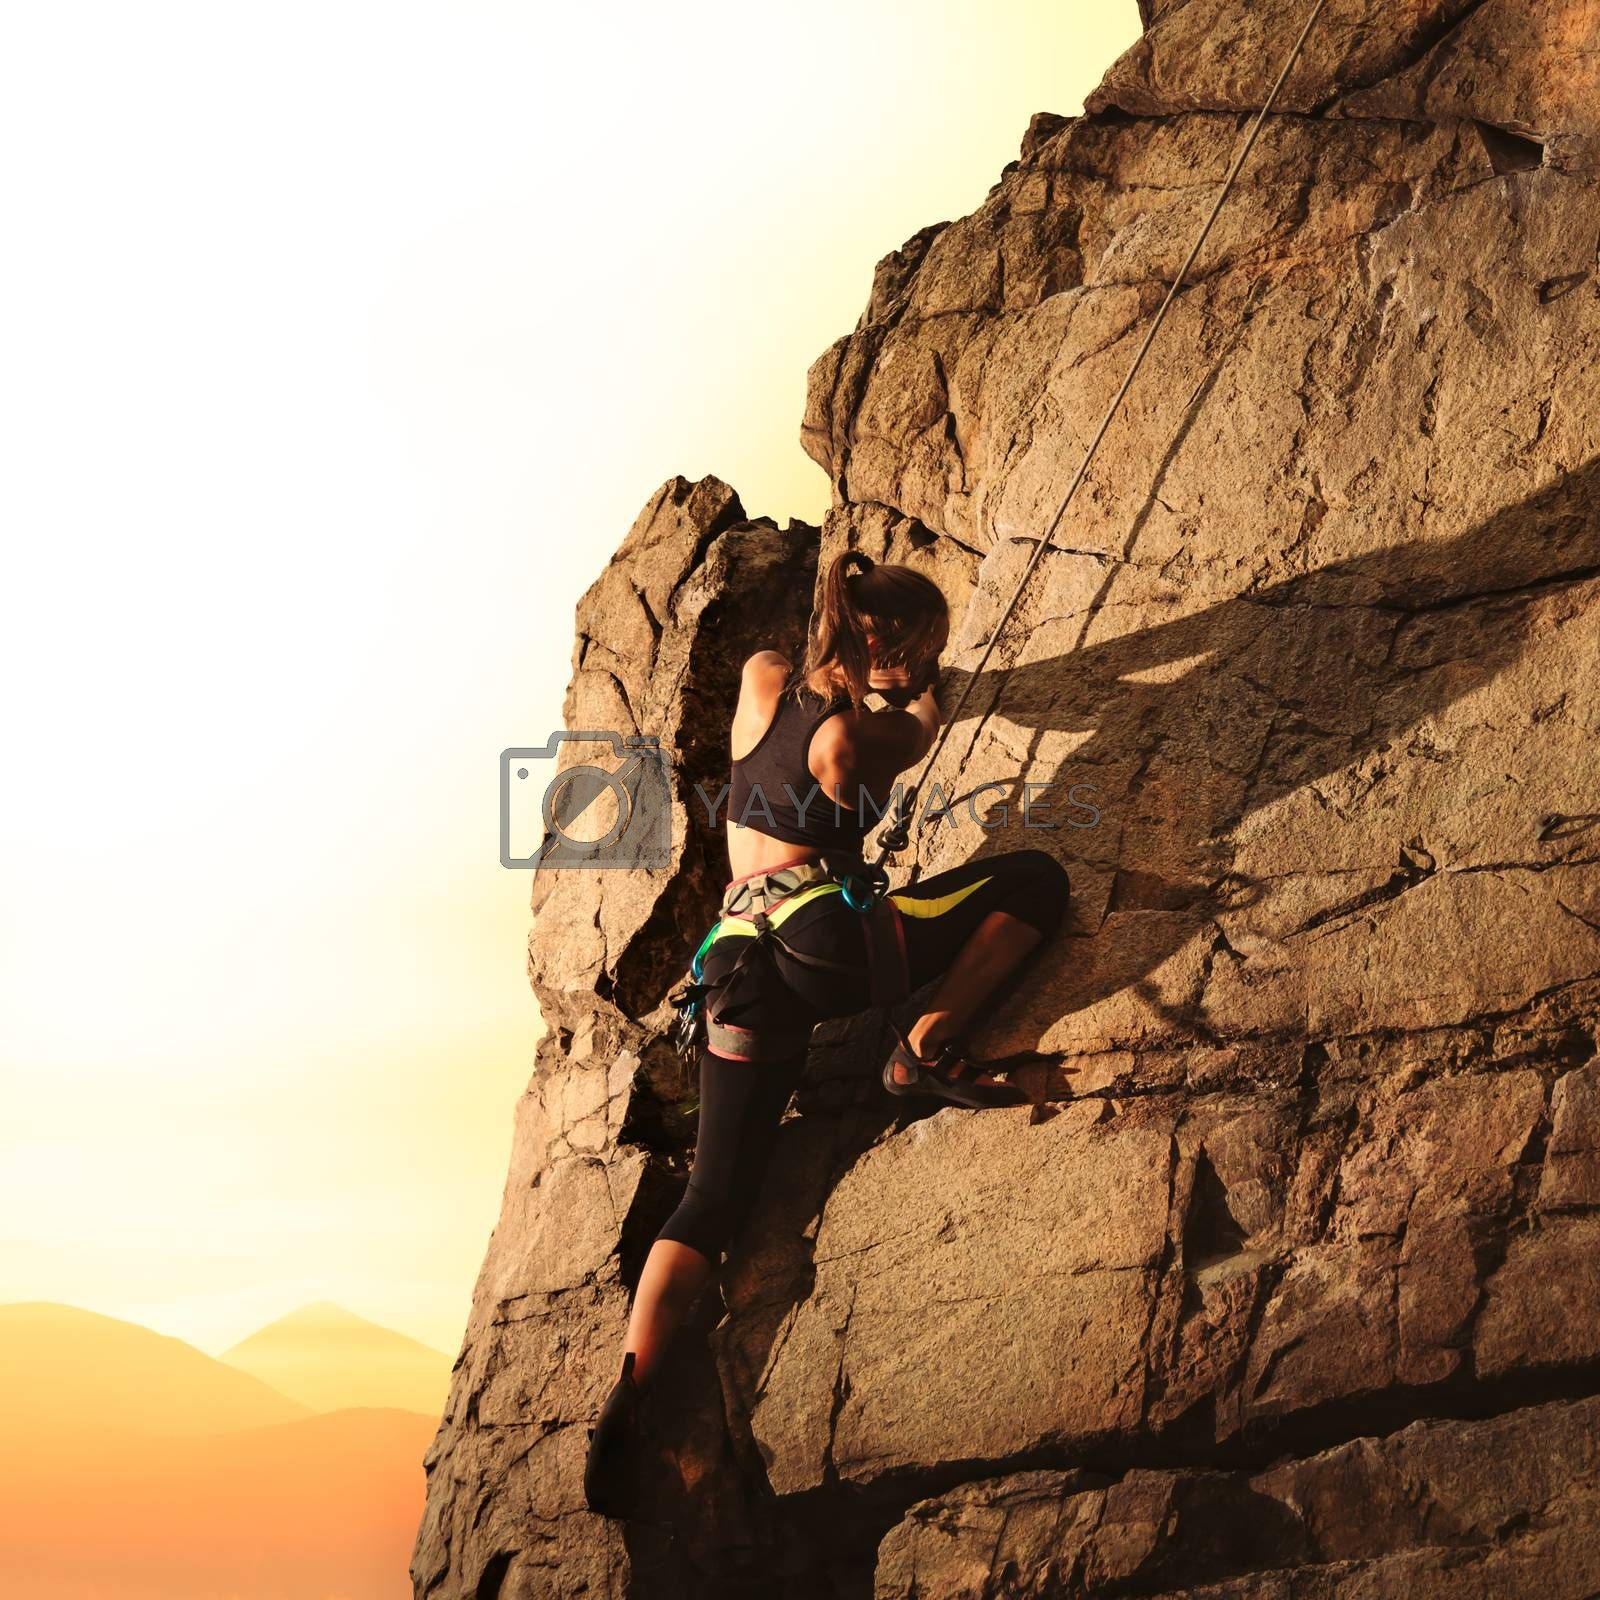 Woman Climber Climbing to the Top of the High Rock at Foggy Sunset in the Mountains. Adventure and Extreme Sport Concept